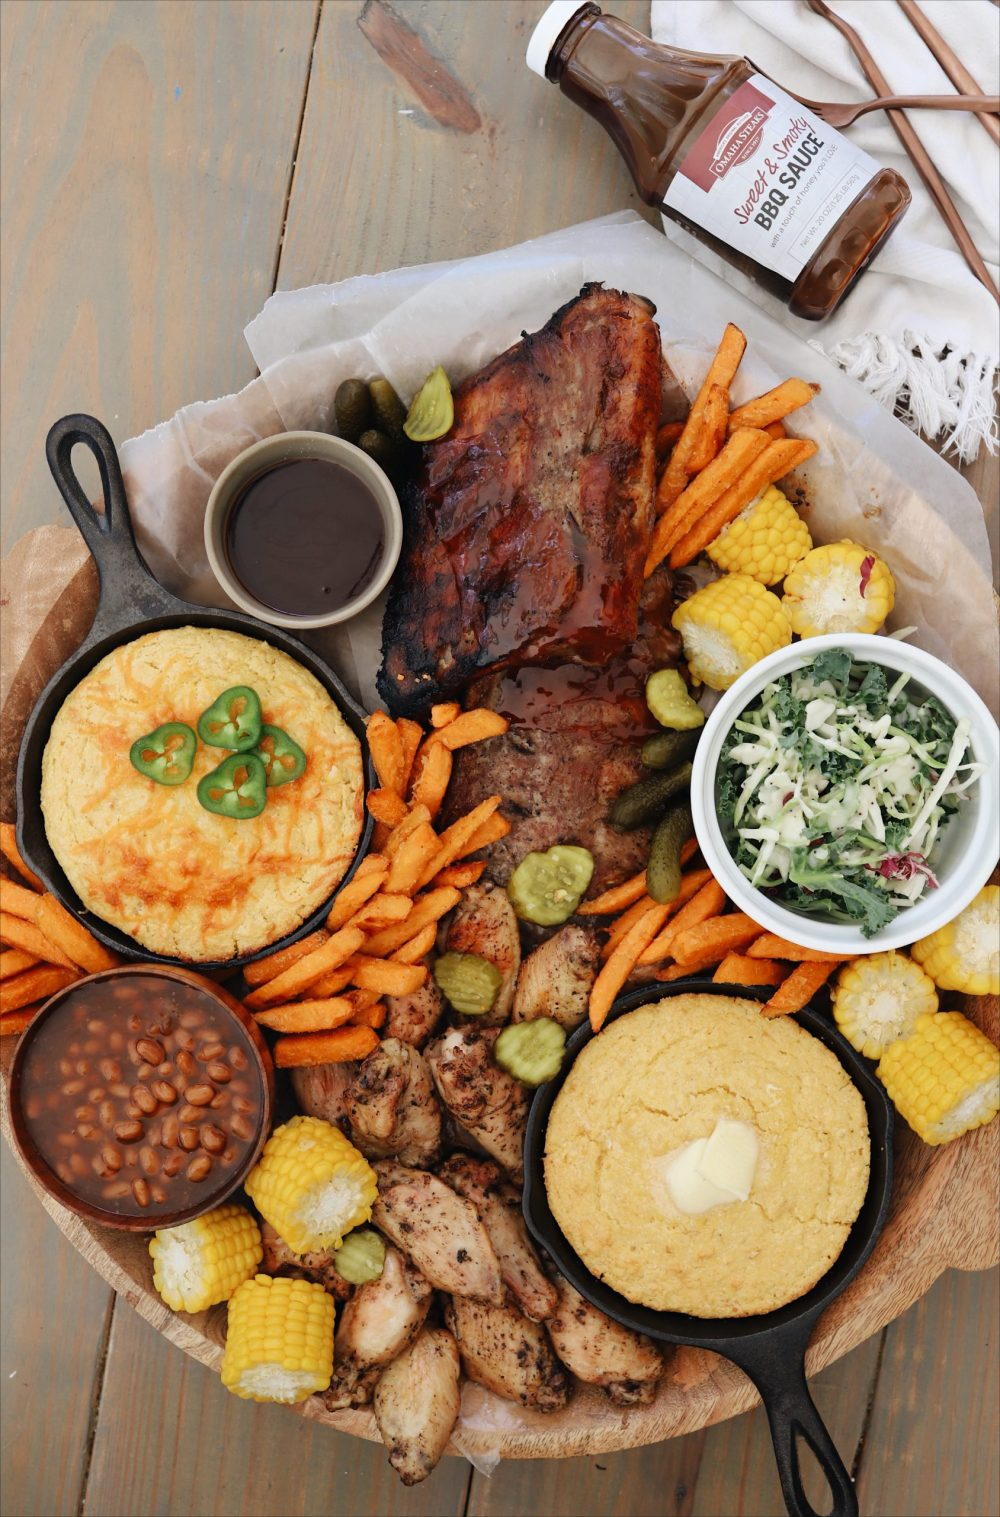 The Easiest Slow Cooker Ribs Recipe You Will Ever Make for tender fall off the bone ribs! |Slow Cooker Ribs by popular Florida lifestyle blog, Fresh Mommy Blog: image of slow cooker ribs on a wooden tray with sweet potato fries, corn on the cob, skillet corn bread, chicken wings, and a white ceramic dish of coleslaw.